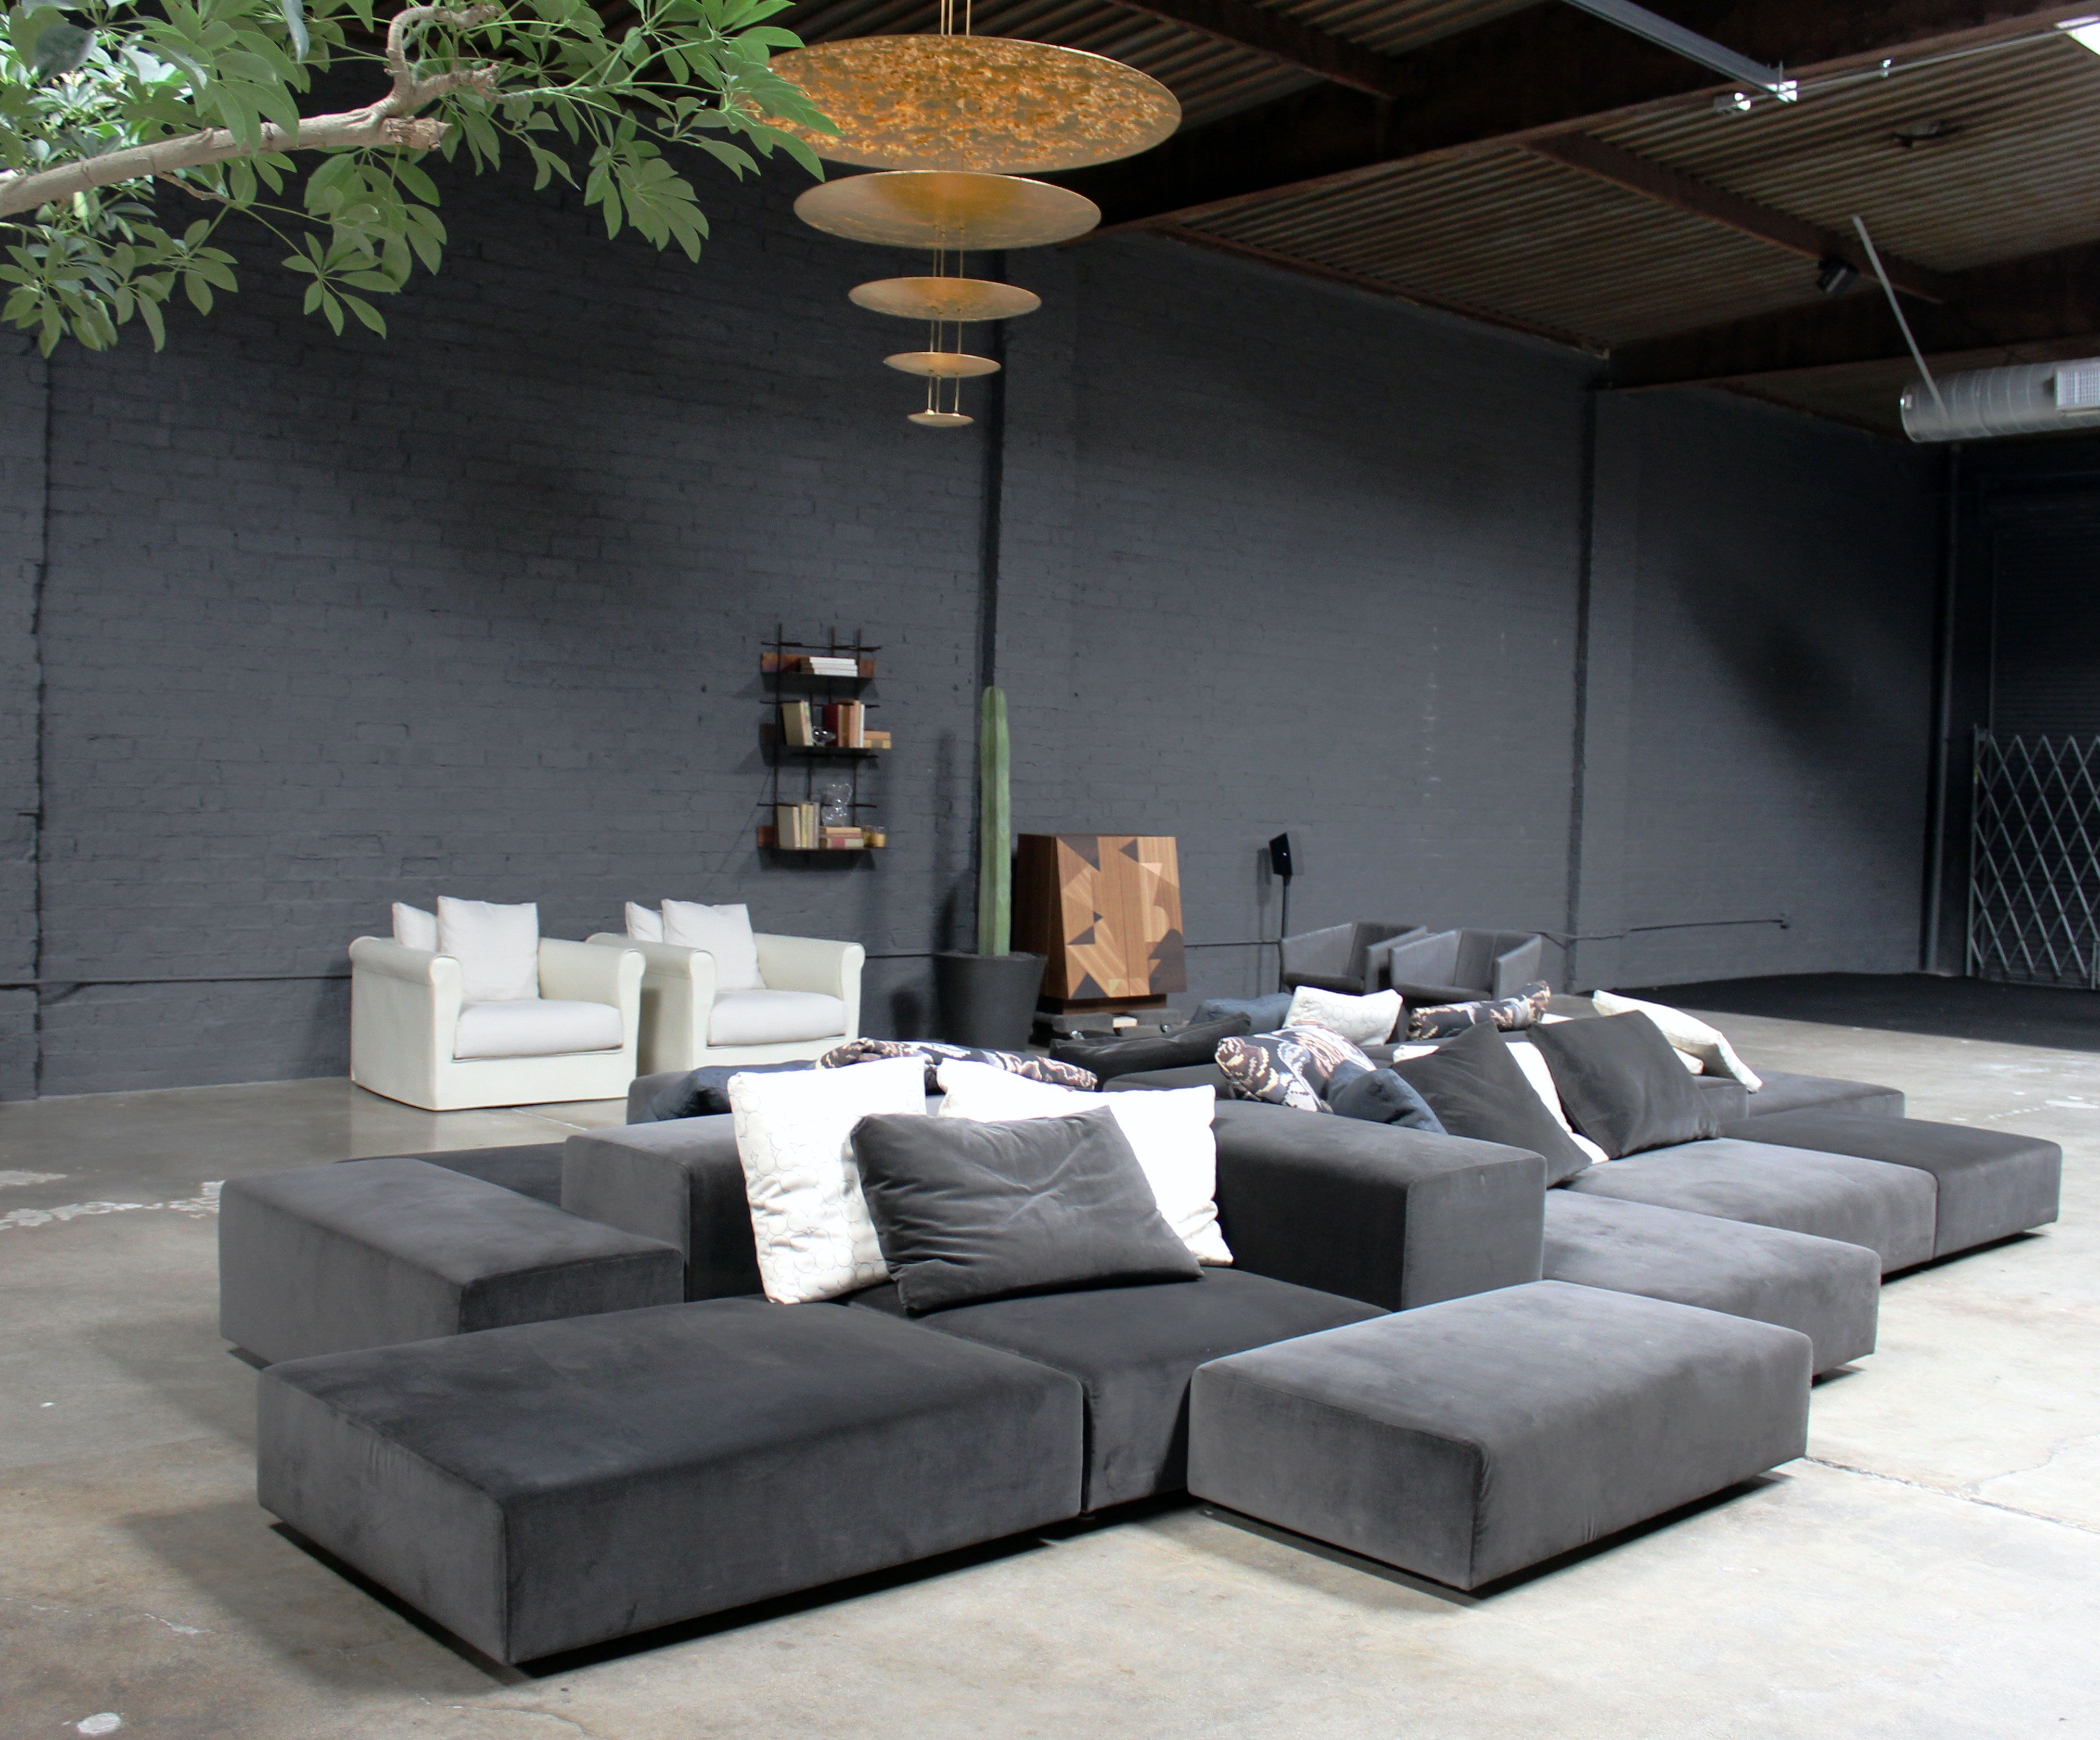 Living Divani The Wall Sofa Extra Wall Sofa By Living Divani And Macchina Dela Luce Pendant By